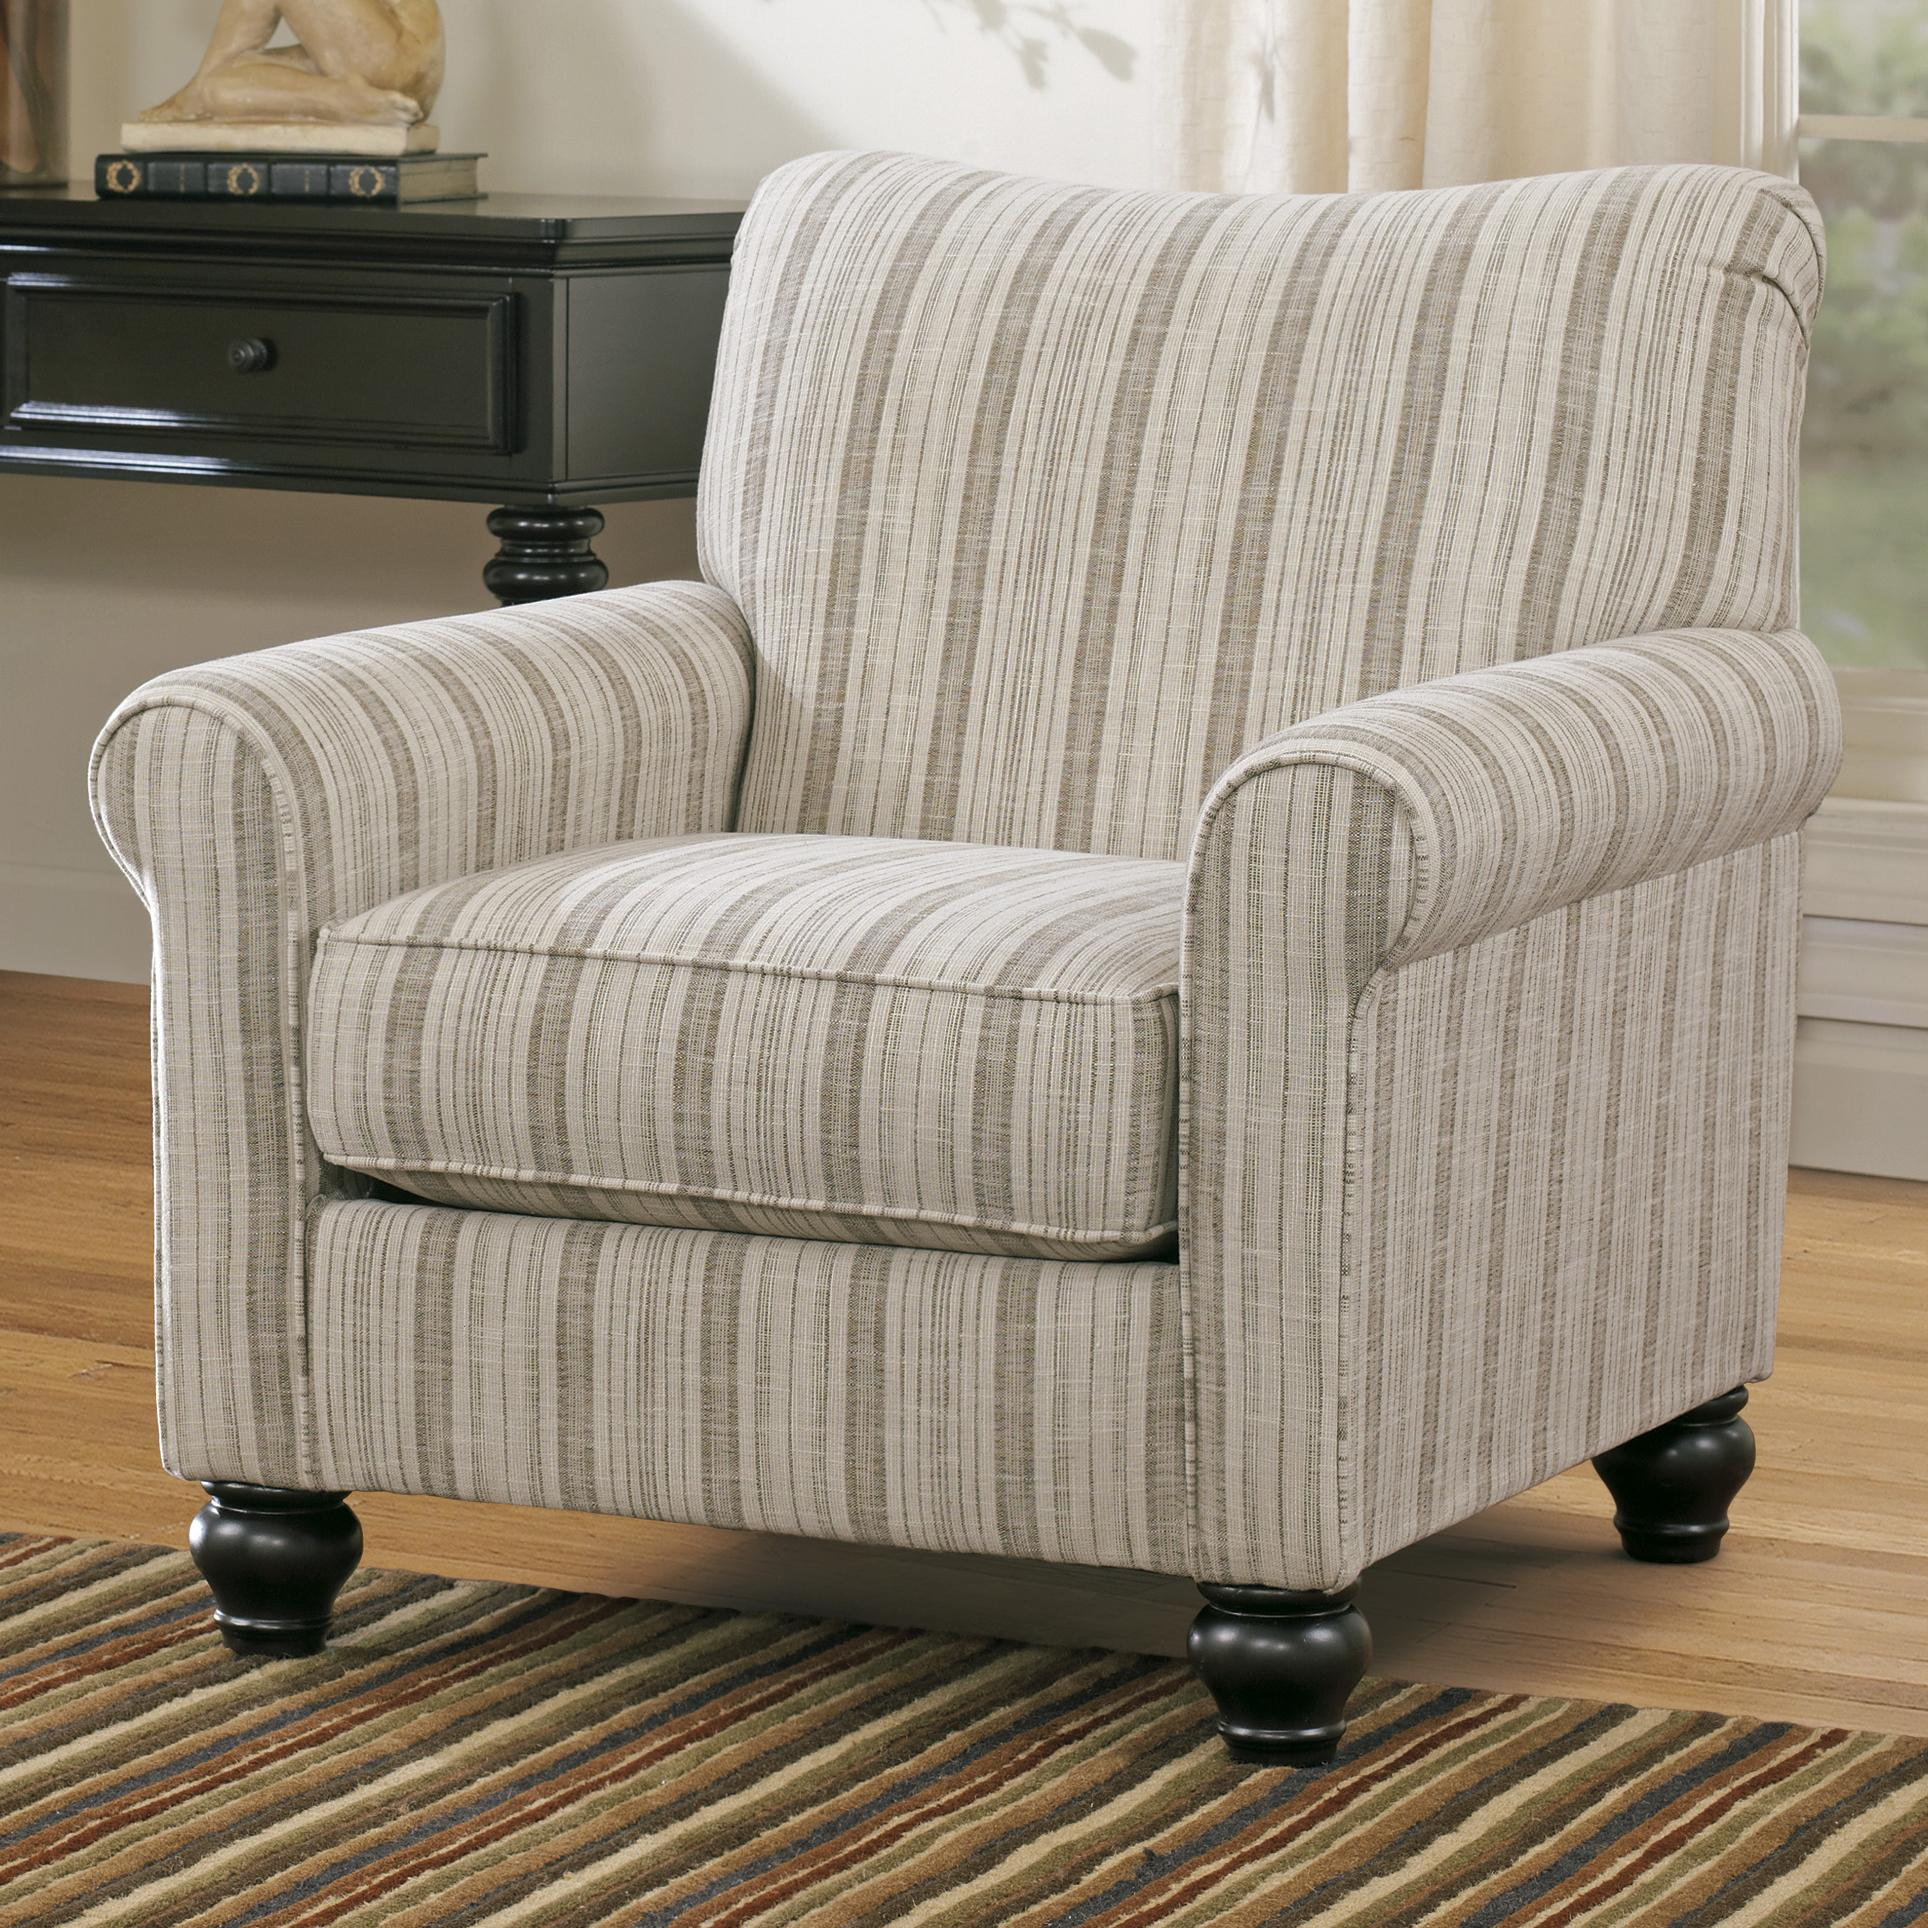 Signature Design by Ashley Milari Accent Chair - Item Number: 1300021